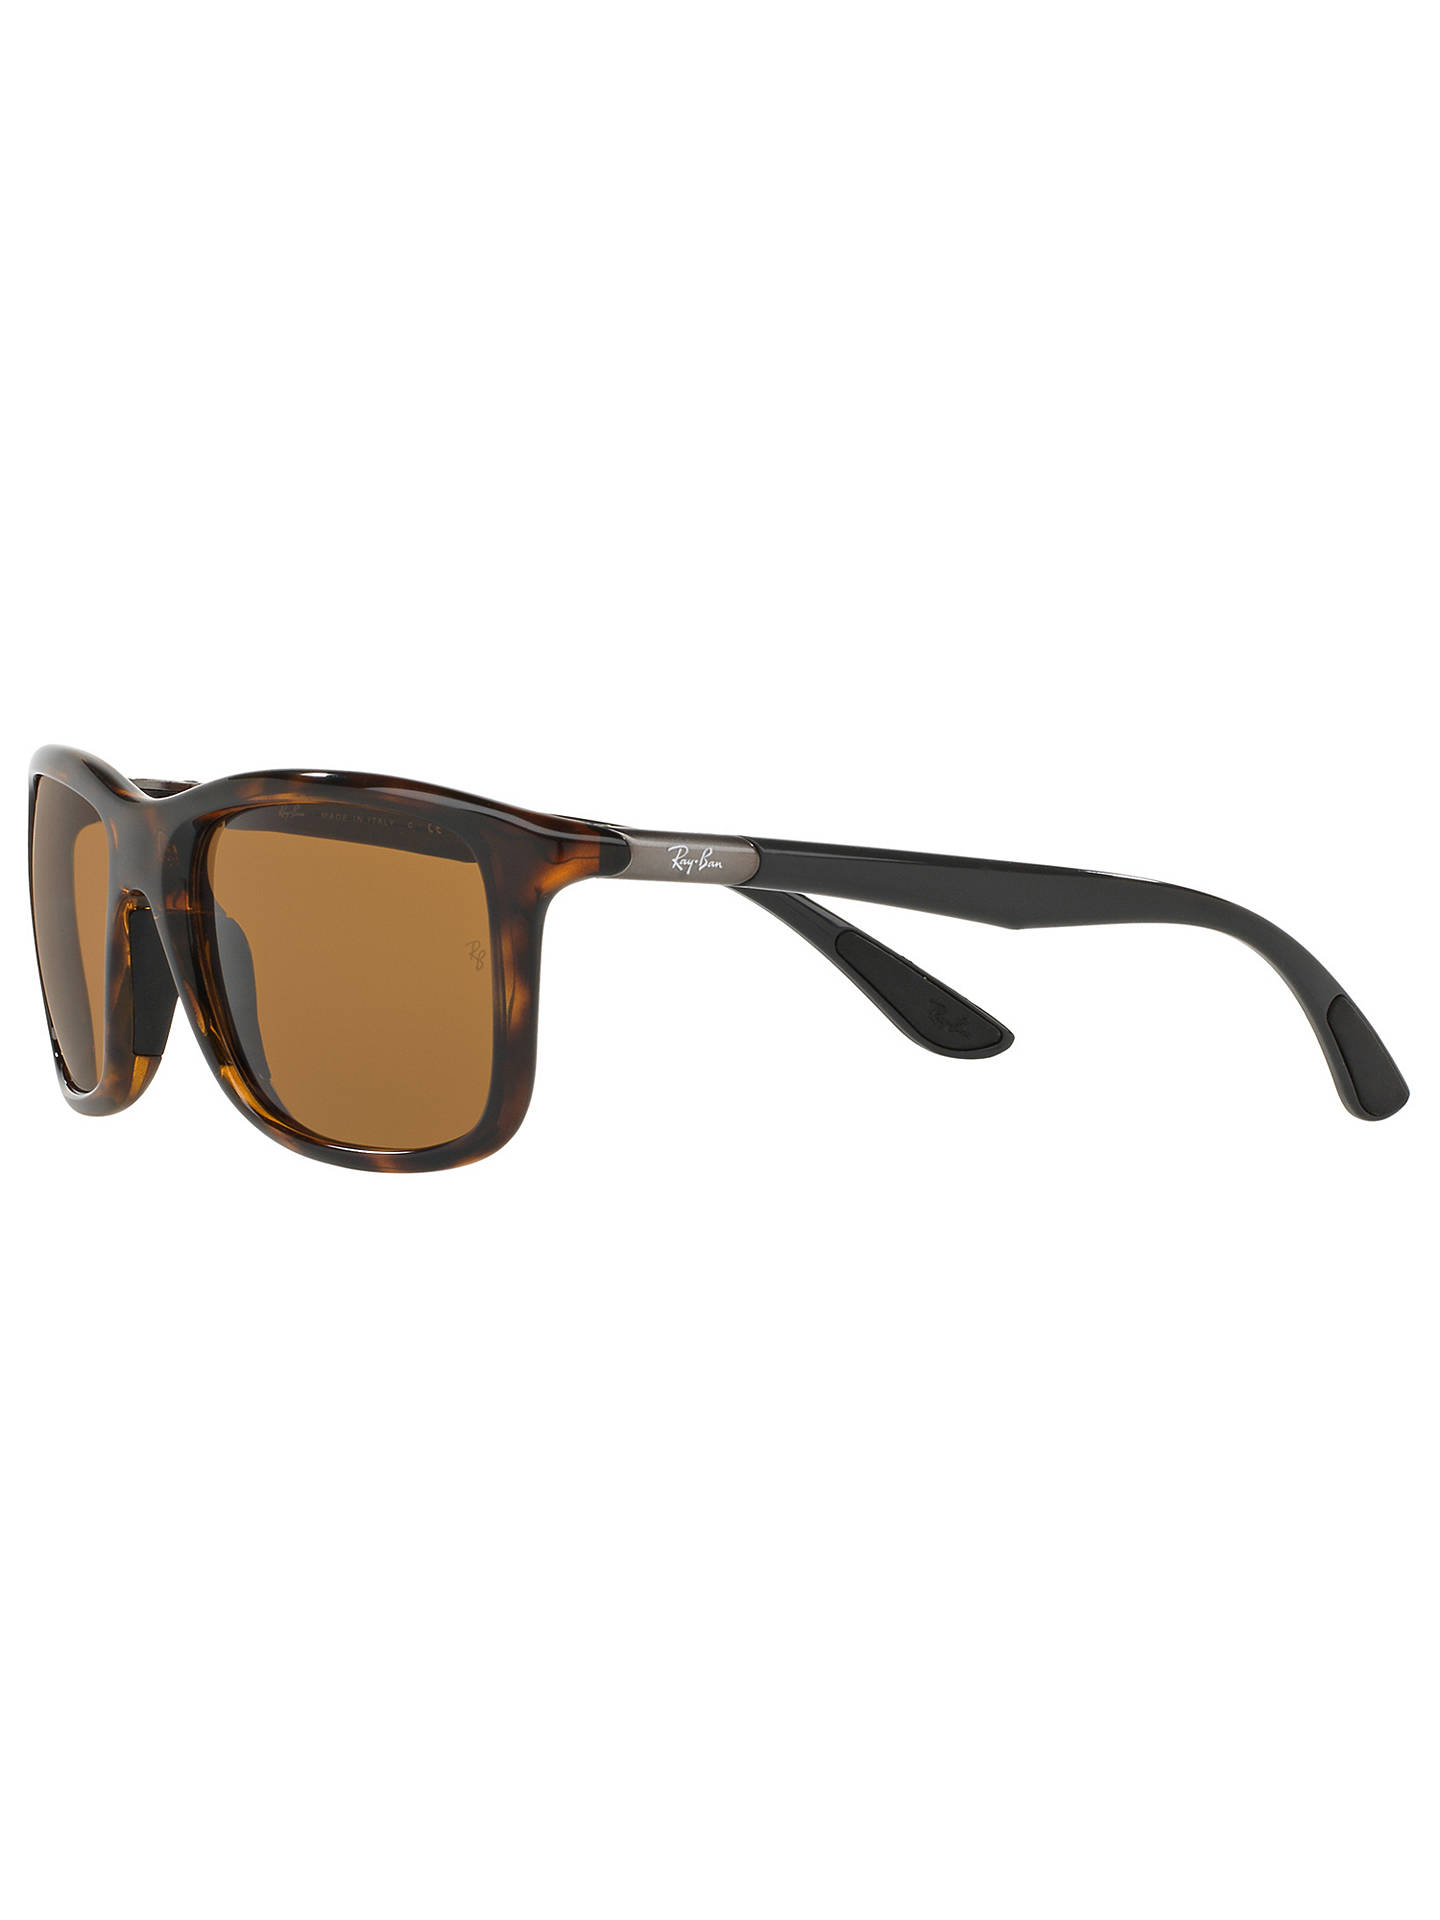 a3e4704cdef Ray-Ban RB8352 Polarised Square Sunglasses at John Lewis   Partners